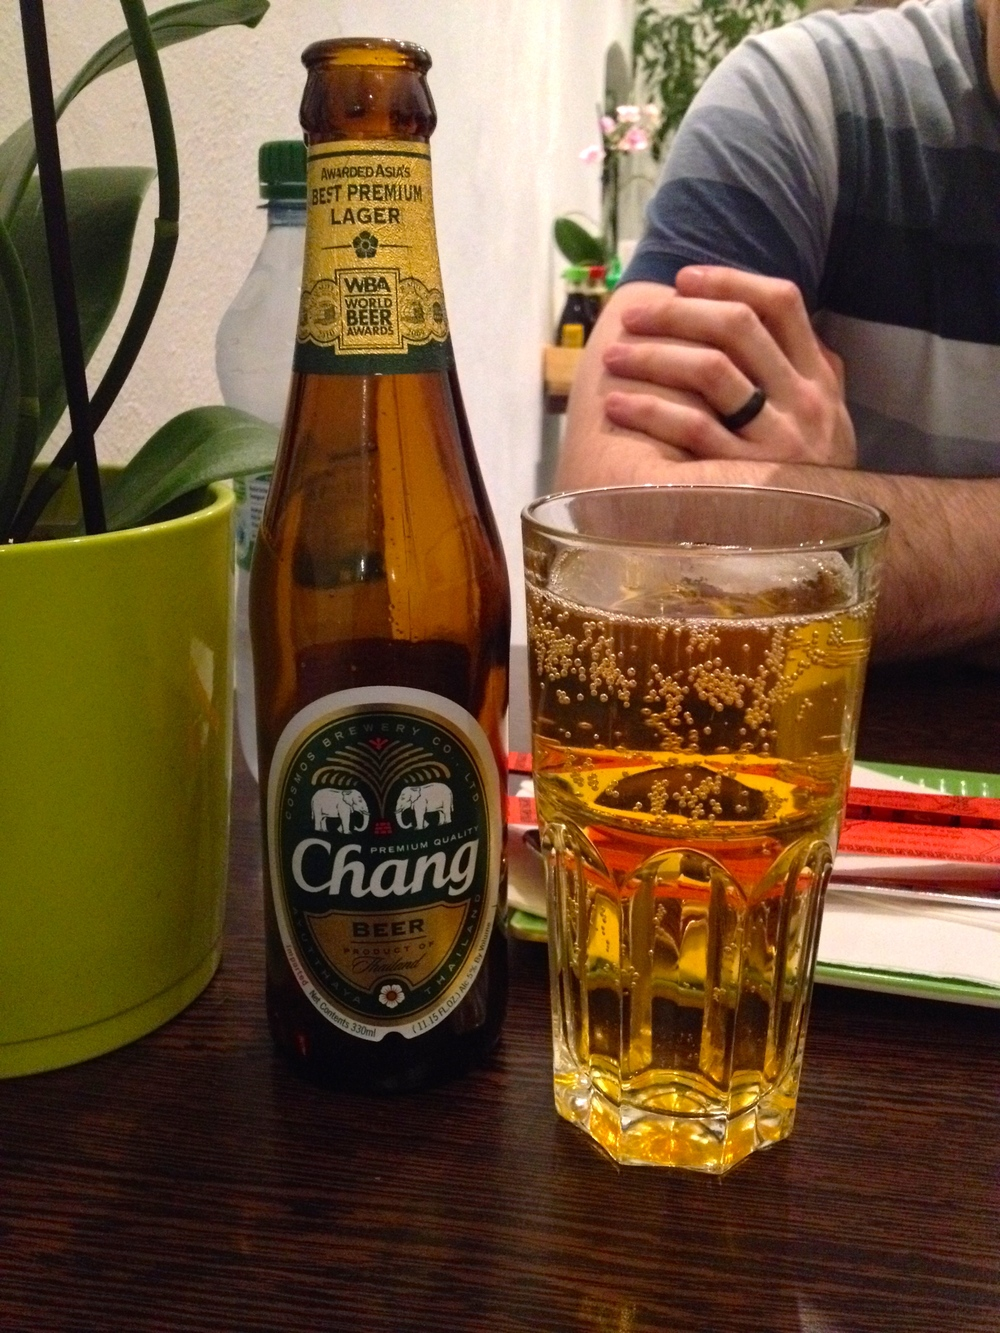 My Thai beer -- crisp and refreshing!